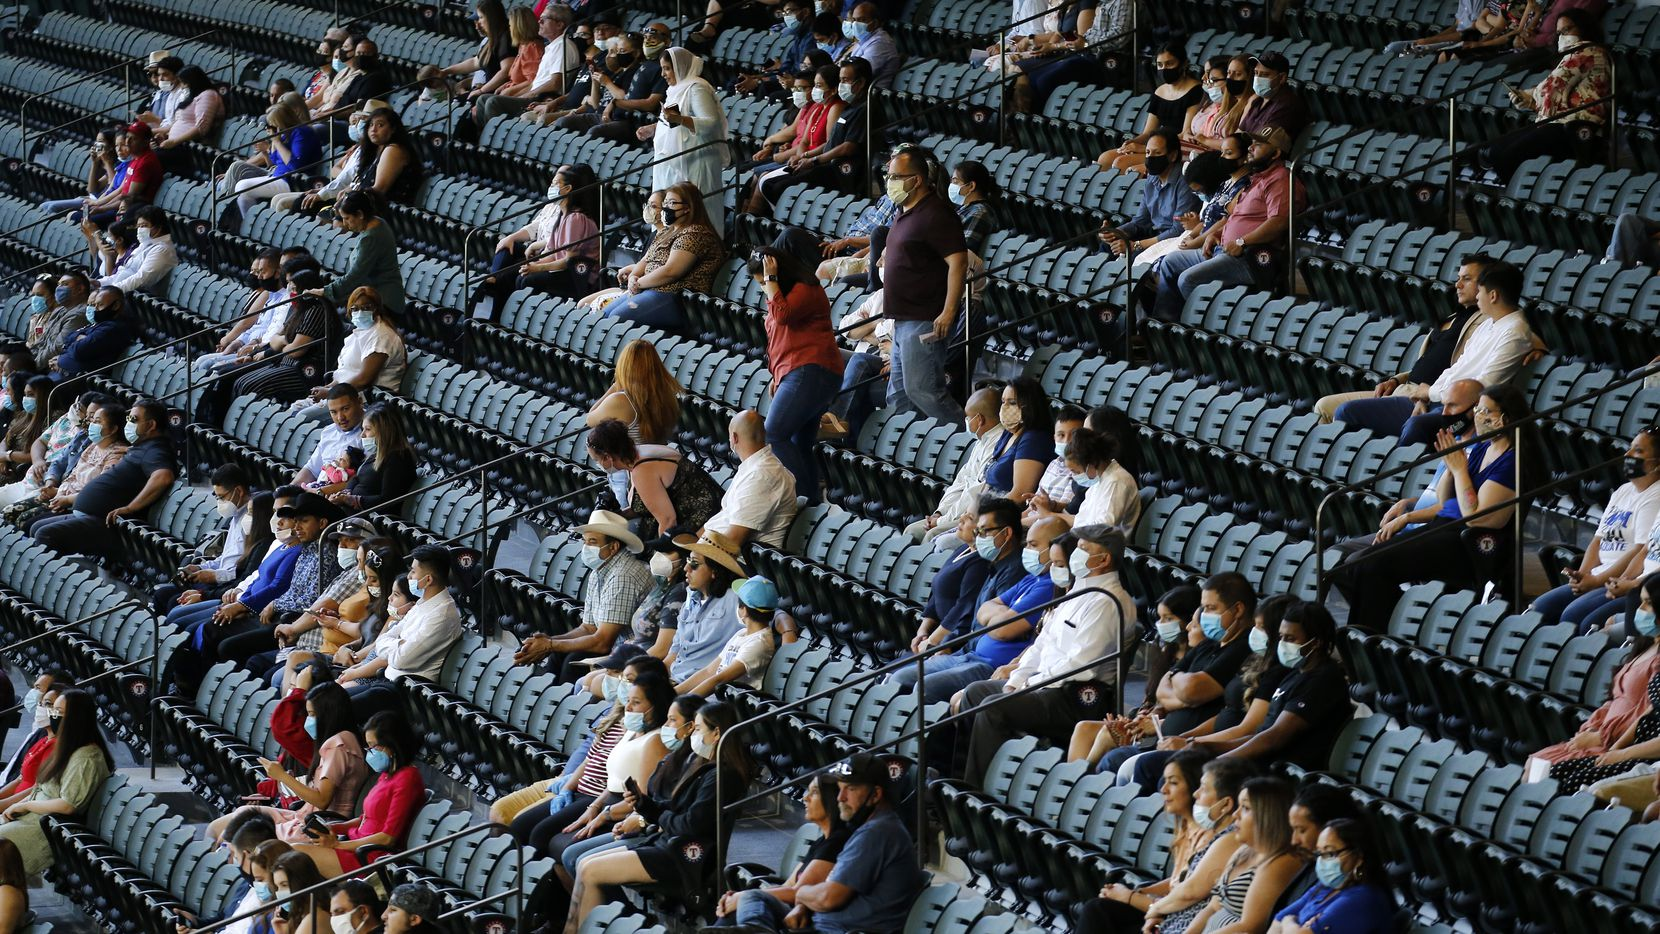 Guests wearing masks were socially-distanced in their ticketed seats for Irving's Jack E. Singley Academy commencement at Globe Life Field in Arlington, Texas, Friday, May 29 2020. The graduation ceremony is also the first public event held at the newly constructed ballpark. Because of the COVID-19 pandemic, previous events including the start of the Texas Rangers season have been put on hold. Singley Academy is the first of 49 graduations from 18 Independent School Districts in North Texas that will take place at Globe Life Field through the end of June.